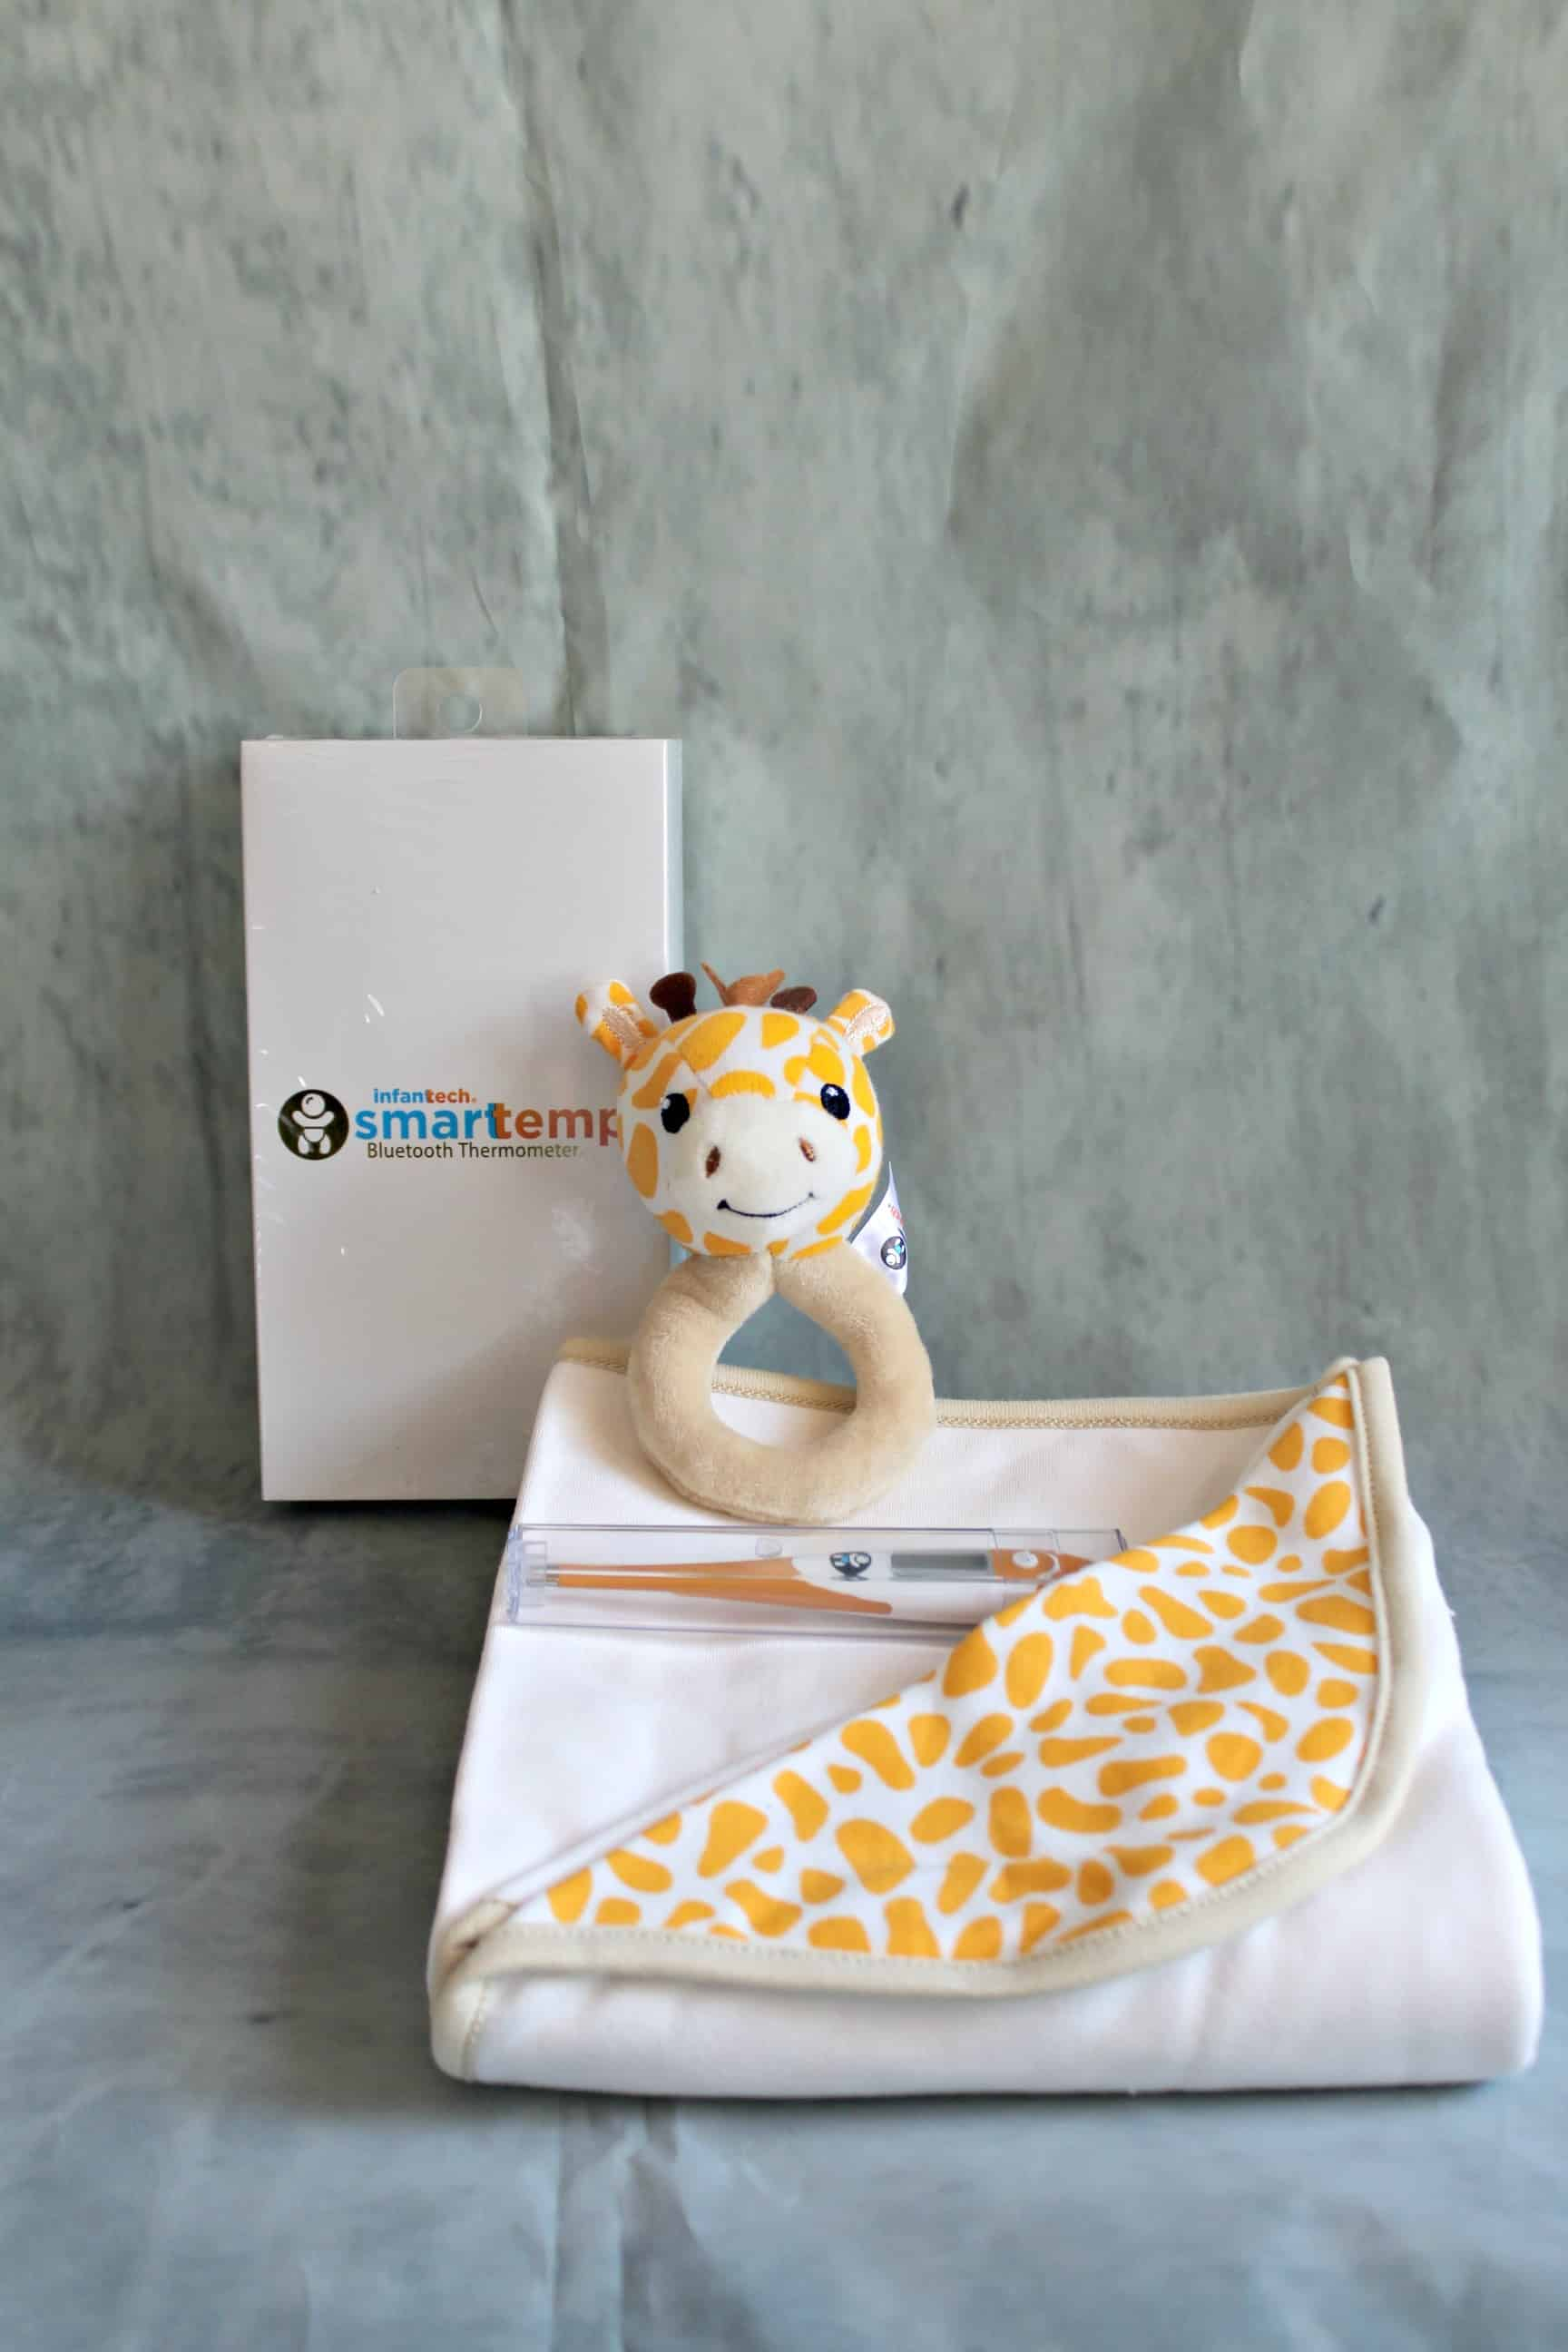 Smarttemp Bluetooth Giraffe Thermometer Gift Set